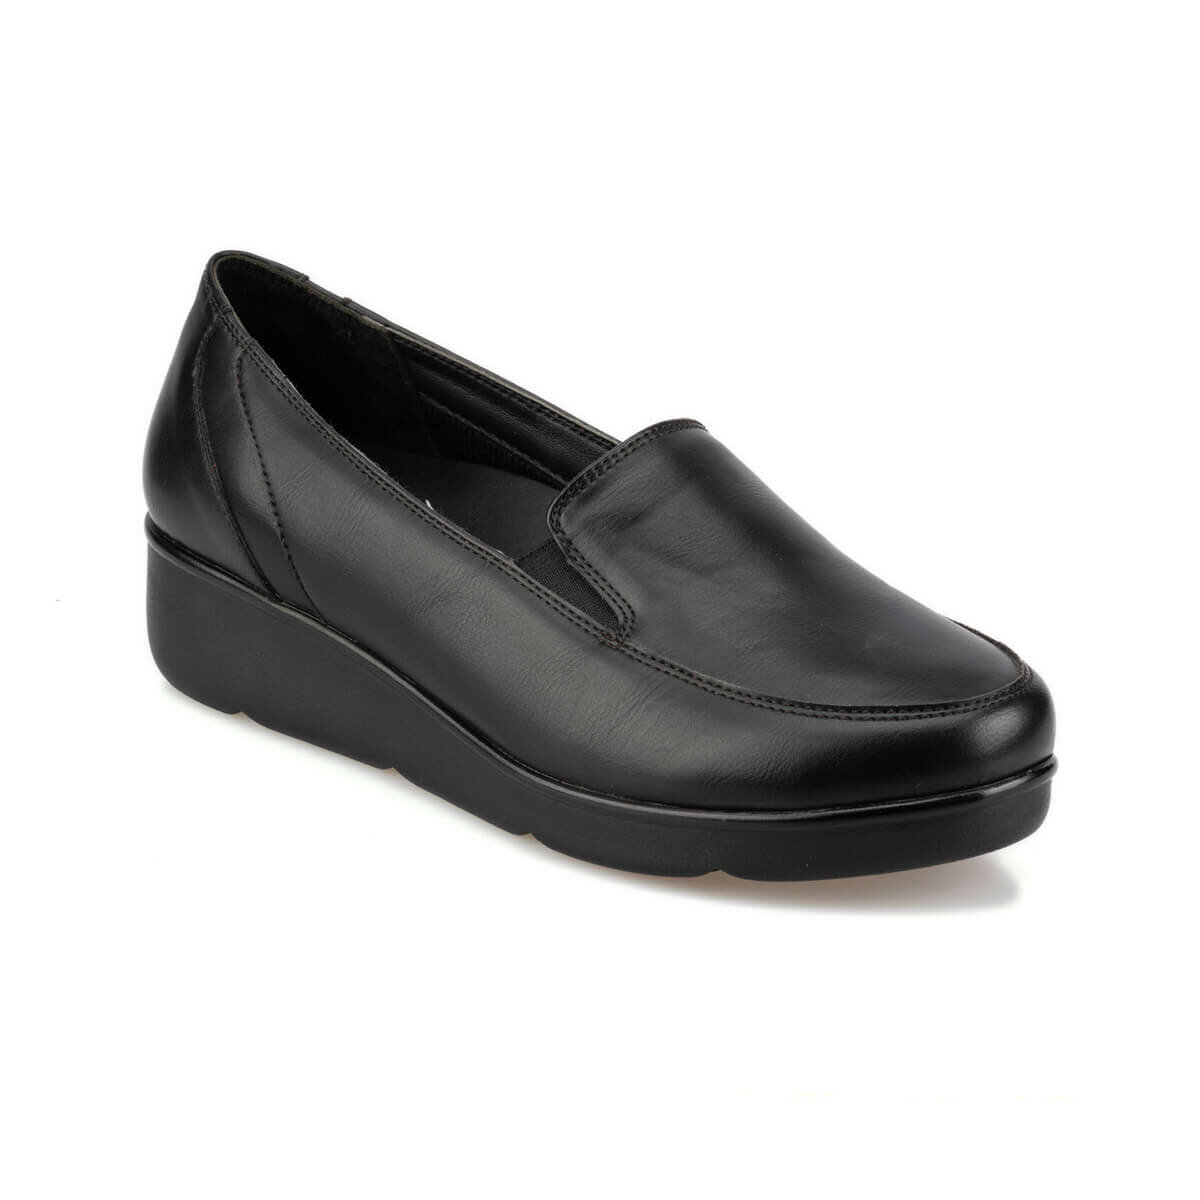 FLO 92. 100110.Z Black Women 'S Wedges Shoes Polaris 5 Point